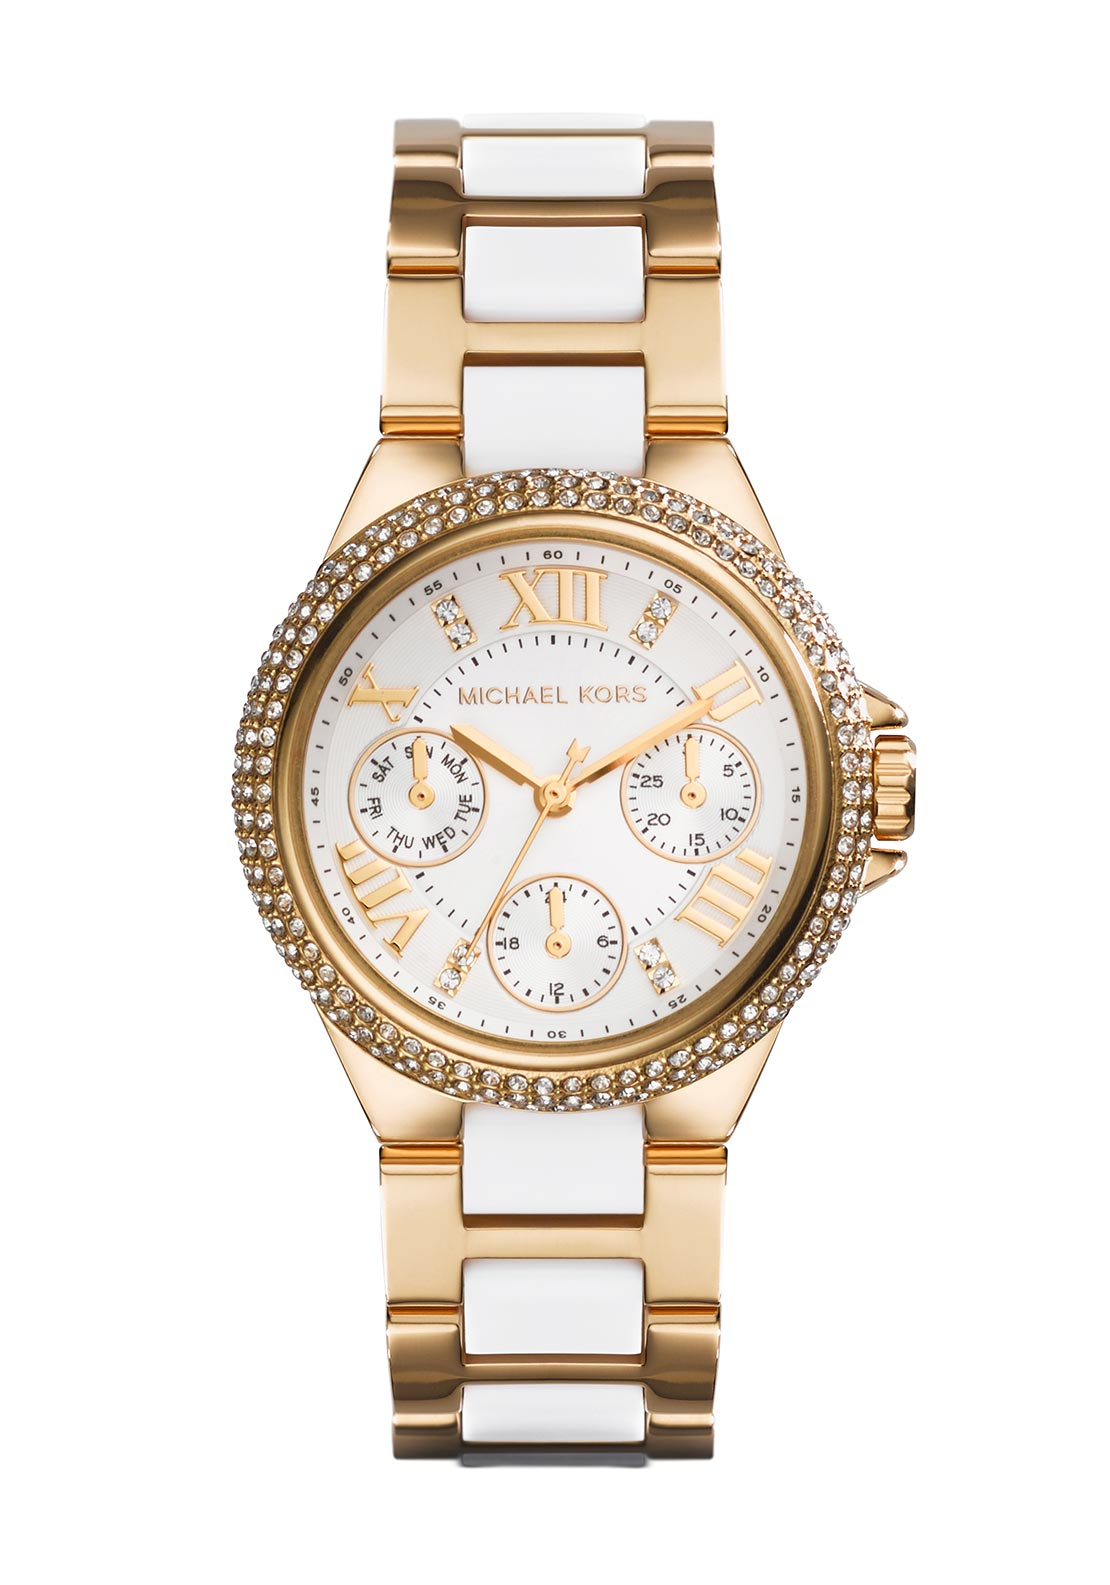 Michael Kors Womens Mini Camille White Watch, Gold